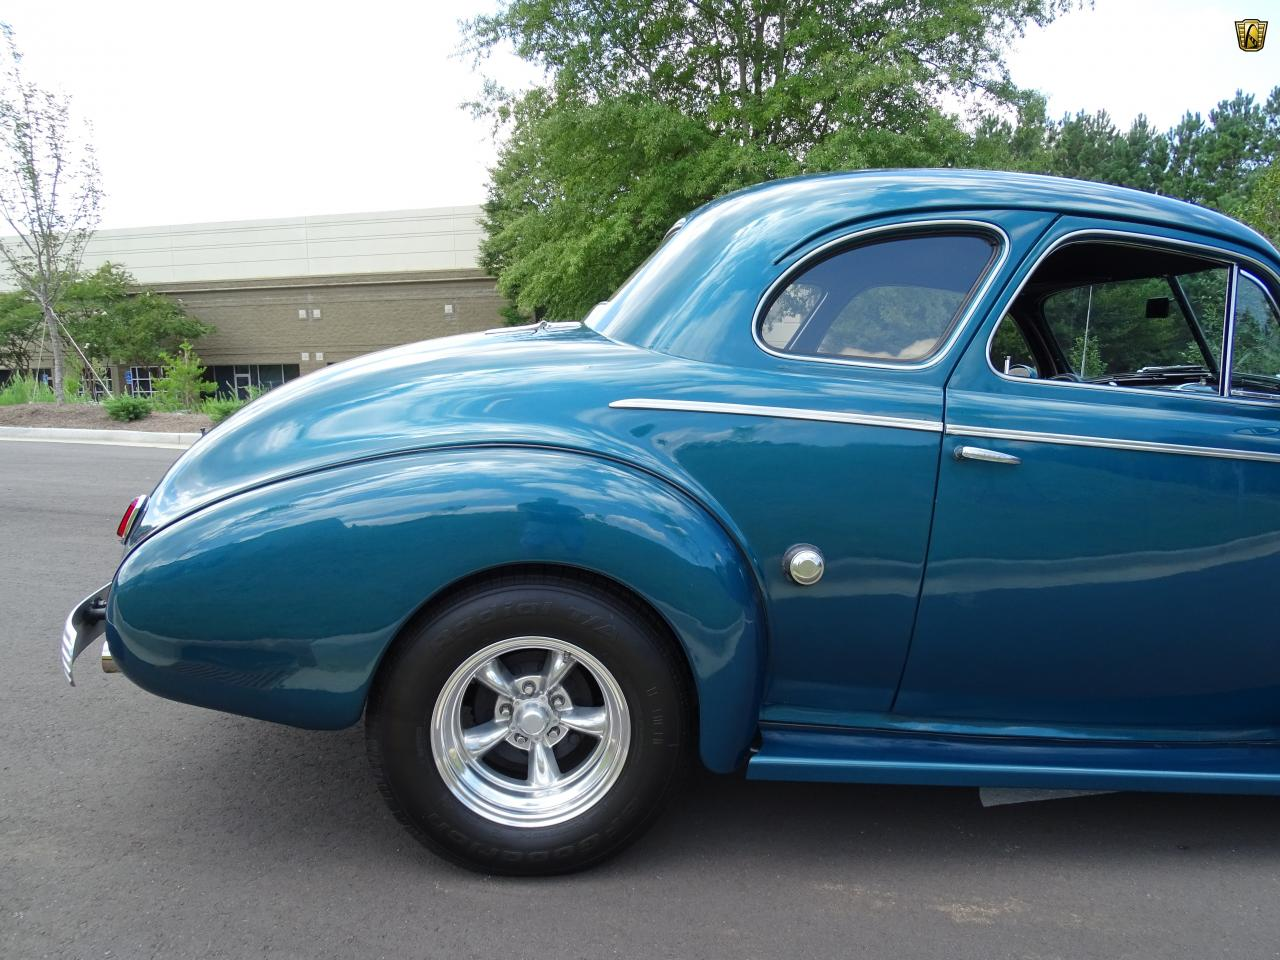 1940 Chevrolet Coupe for sale - Chevrolet Corvette 1940 for sale in